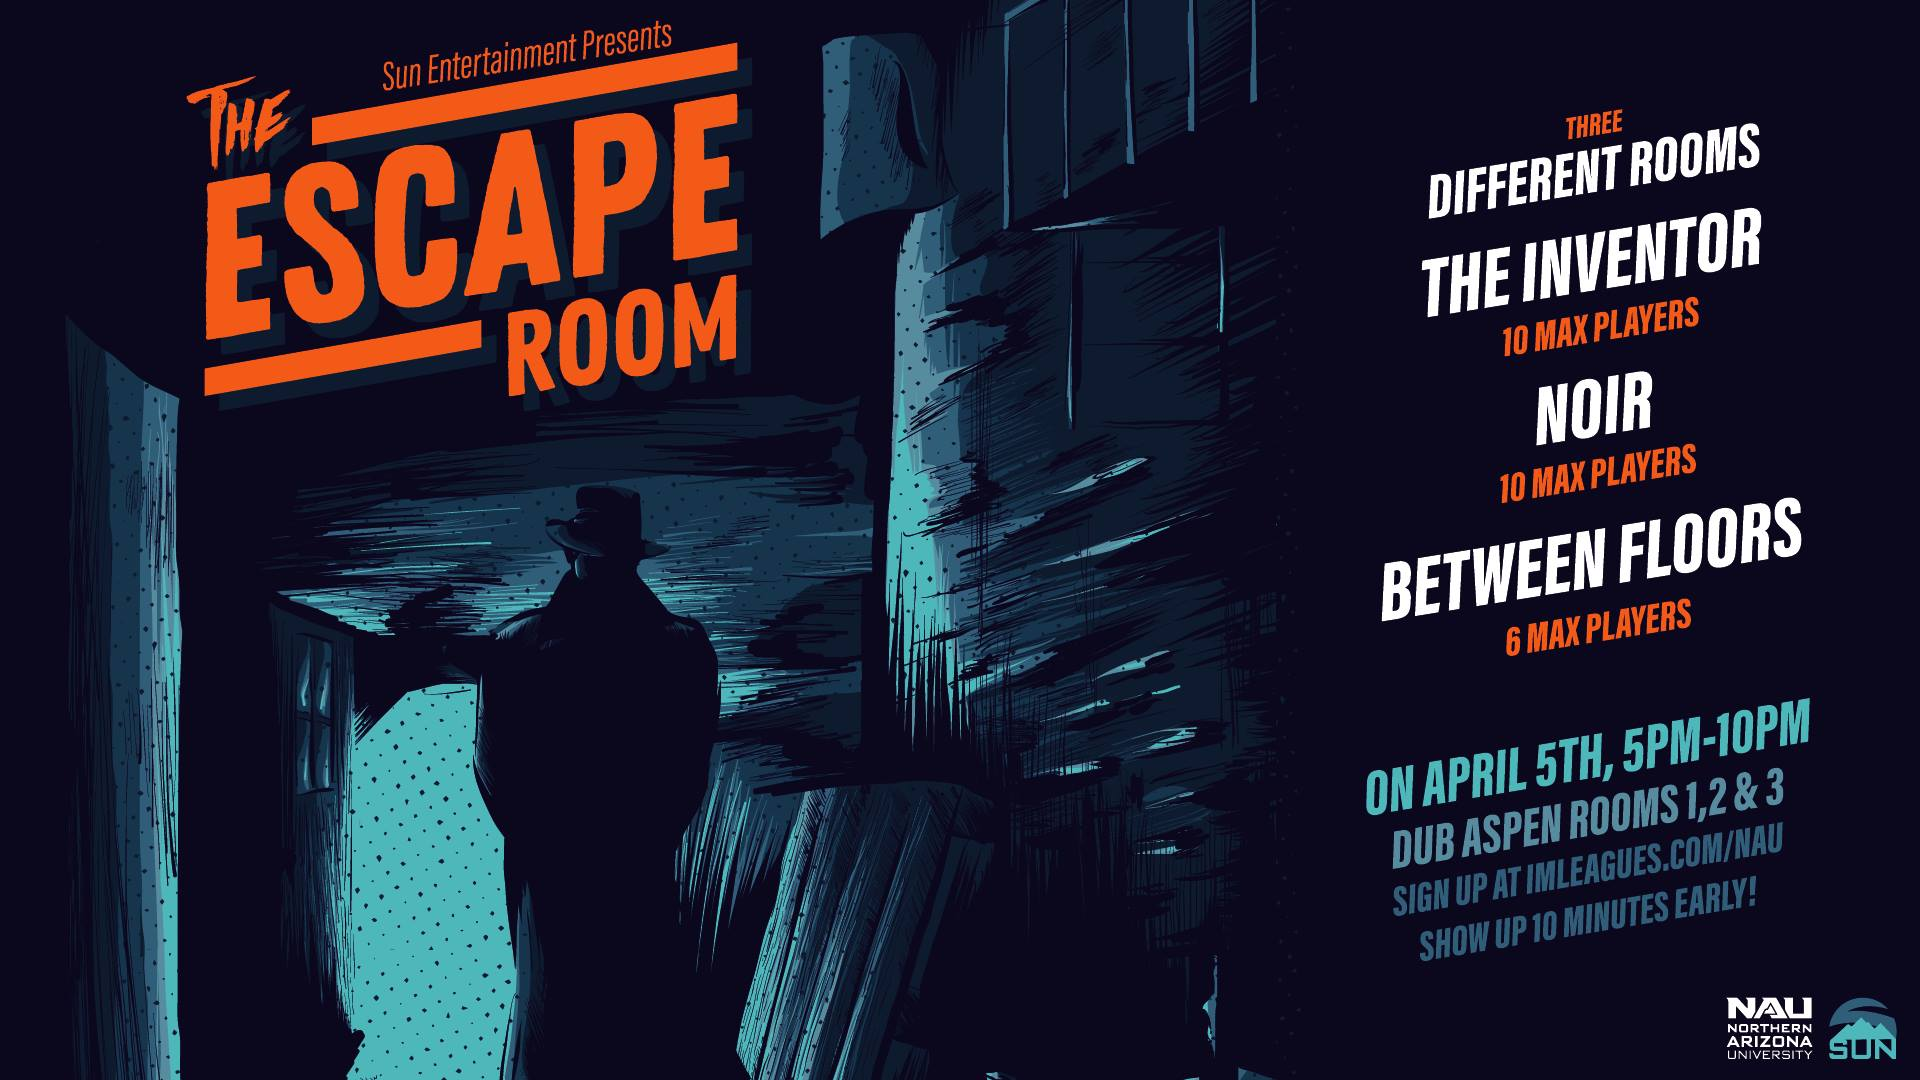 Escape Room Movie Poster Hd